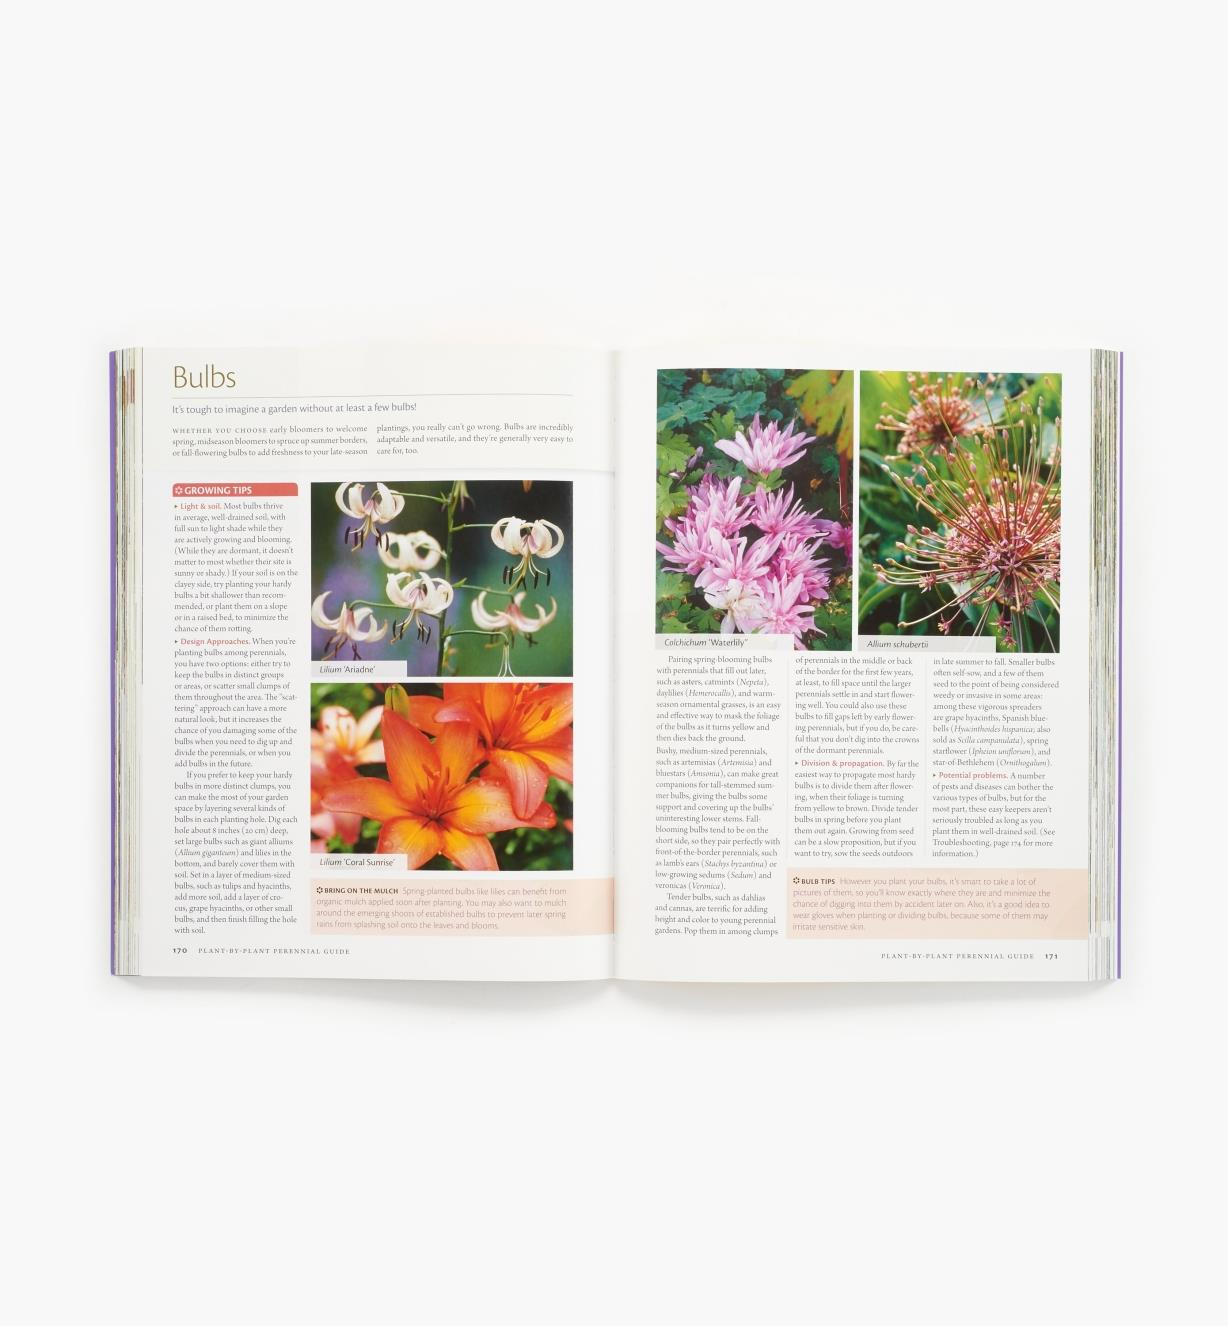 LA934 - The Perennial Care Manual